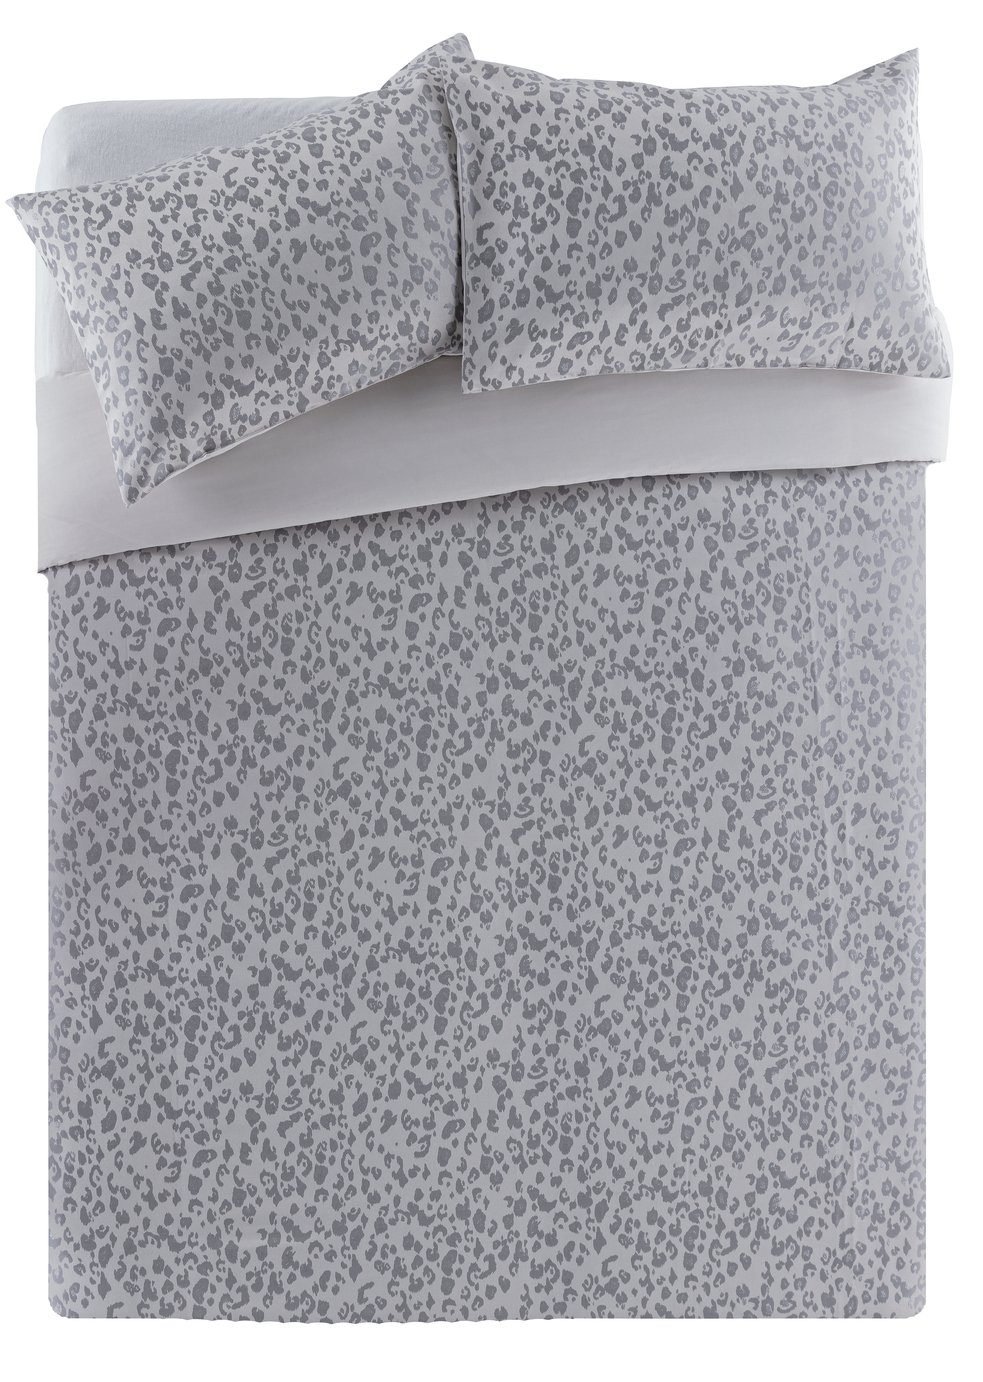 Argos Home Leopard Lurex Jacquard Bedding Set - Double